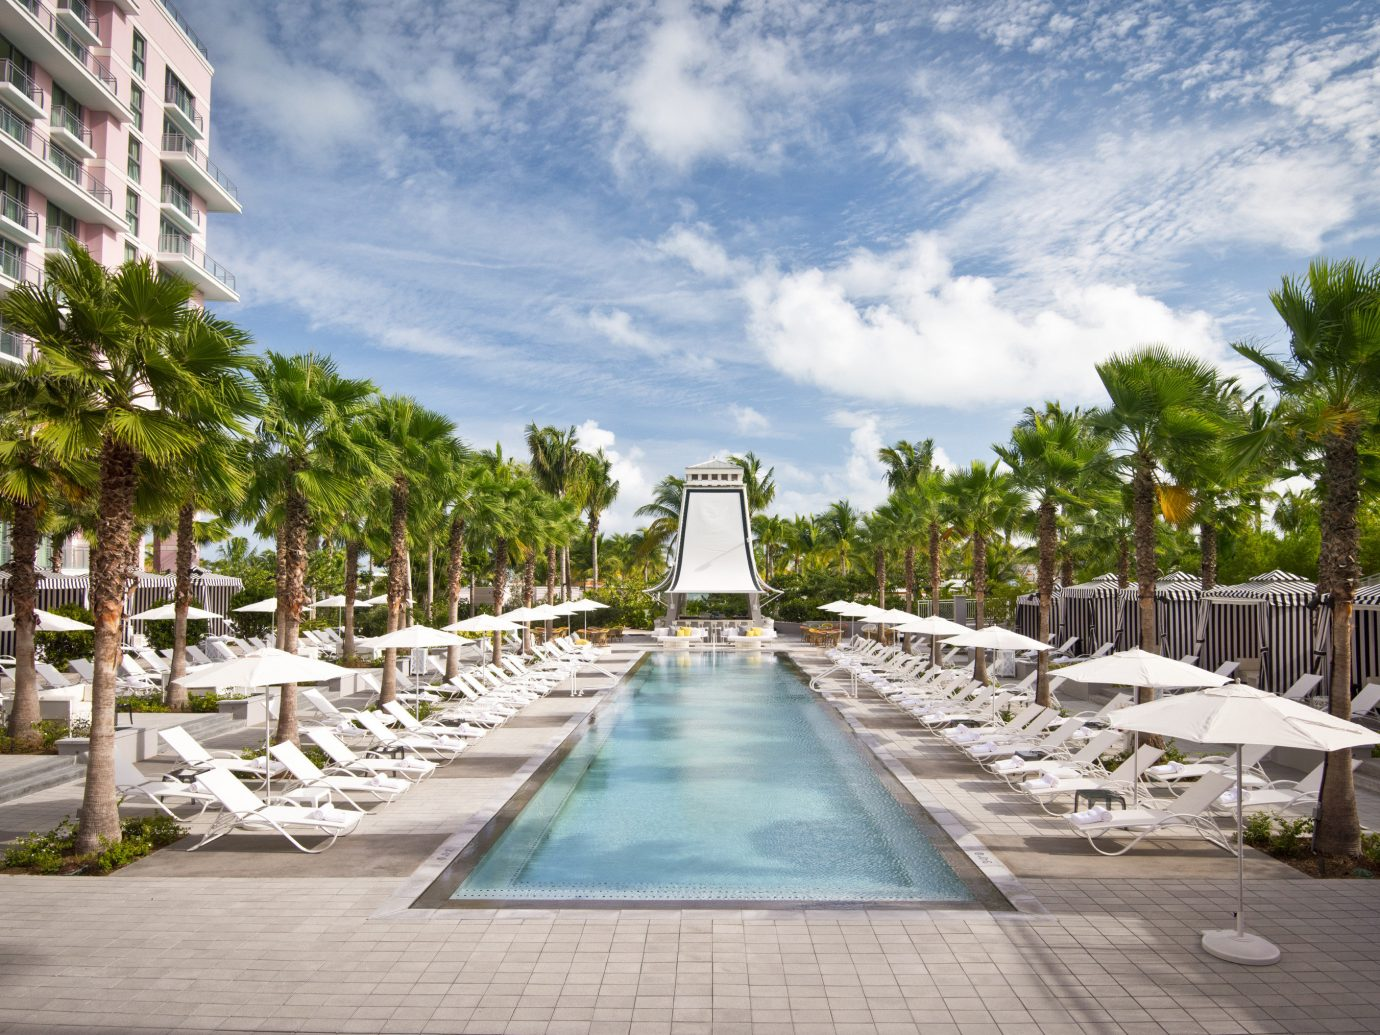 Bahamas caribbean Trip Ideas Resort arecales palm tree tree swimming pool walkway leisure residential area condominium vacation water estate sky reflecting pool real estate tourism outdoor structure